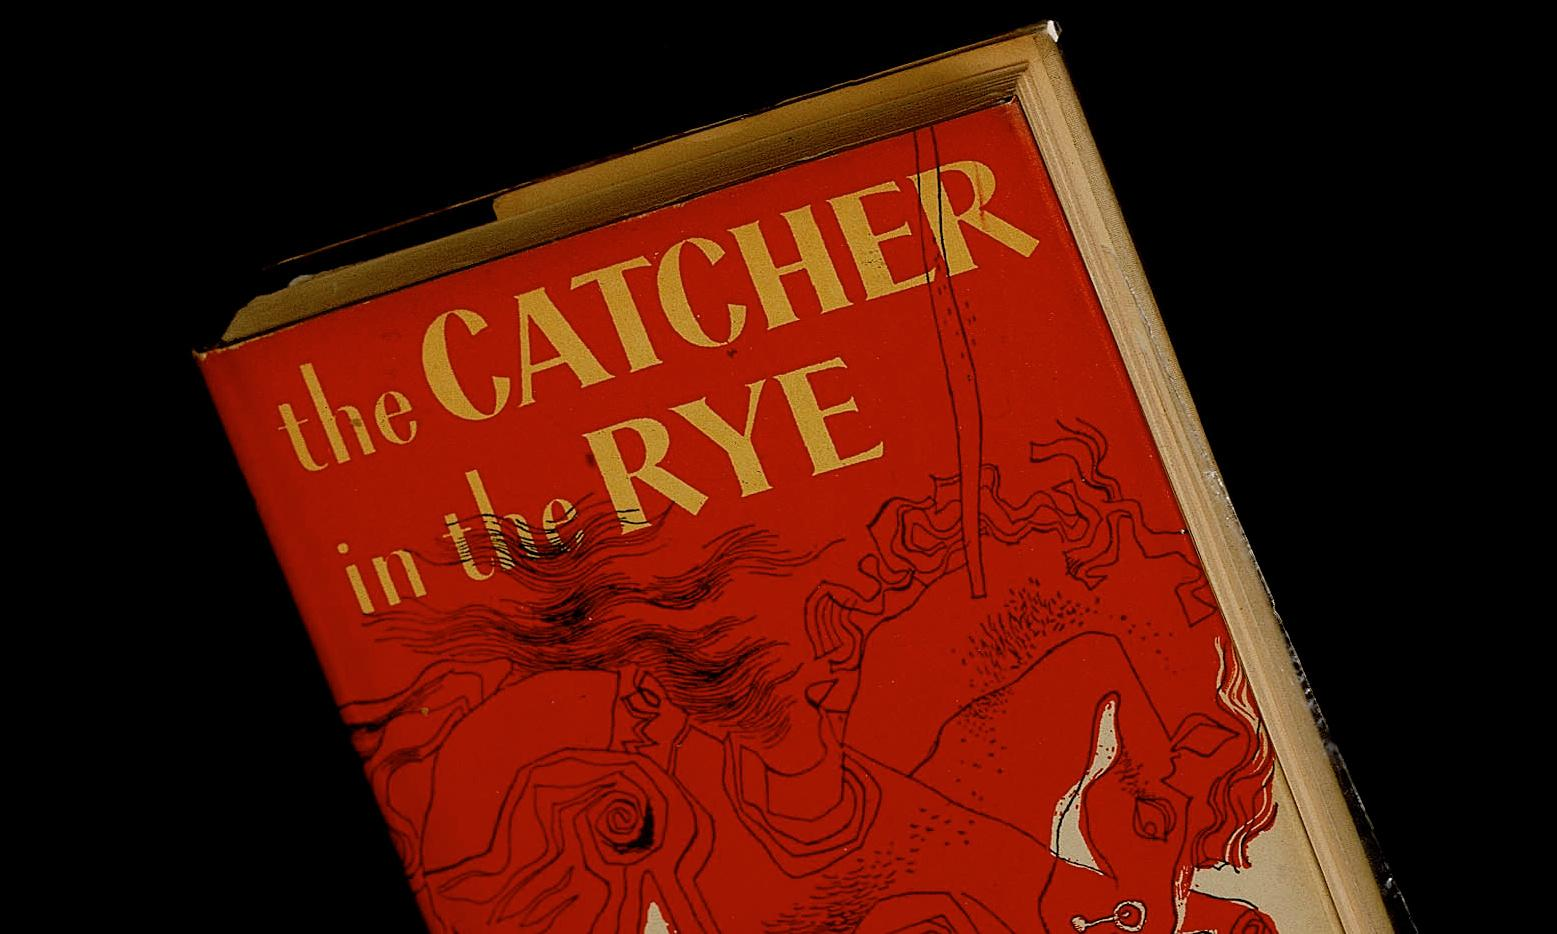 From everyteen to annoying: are today's young readers turning on The Catcher in the Rye?